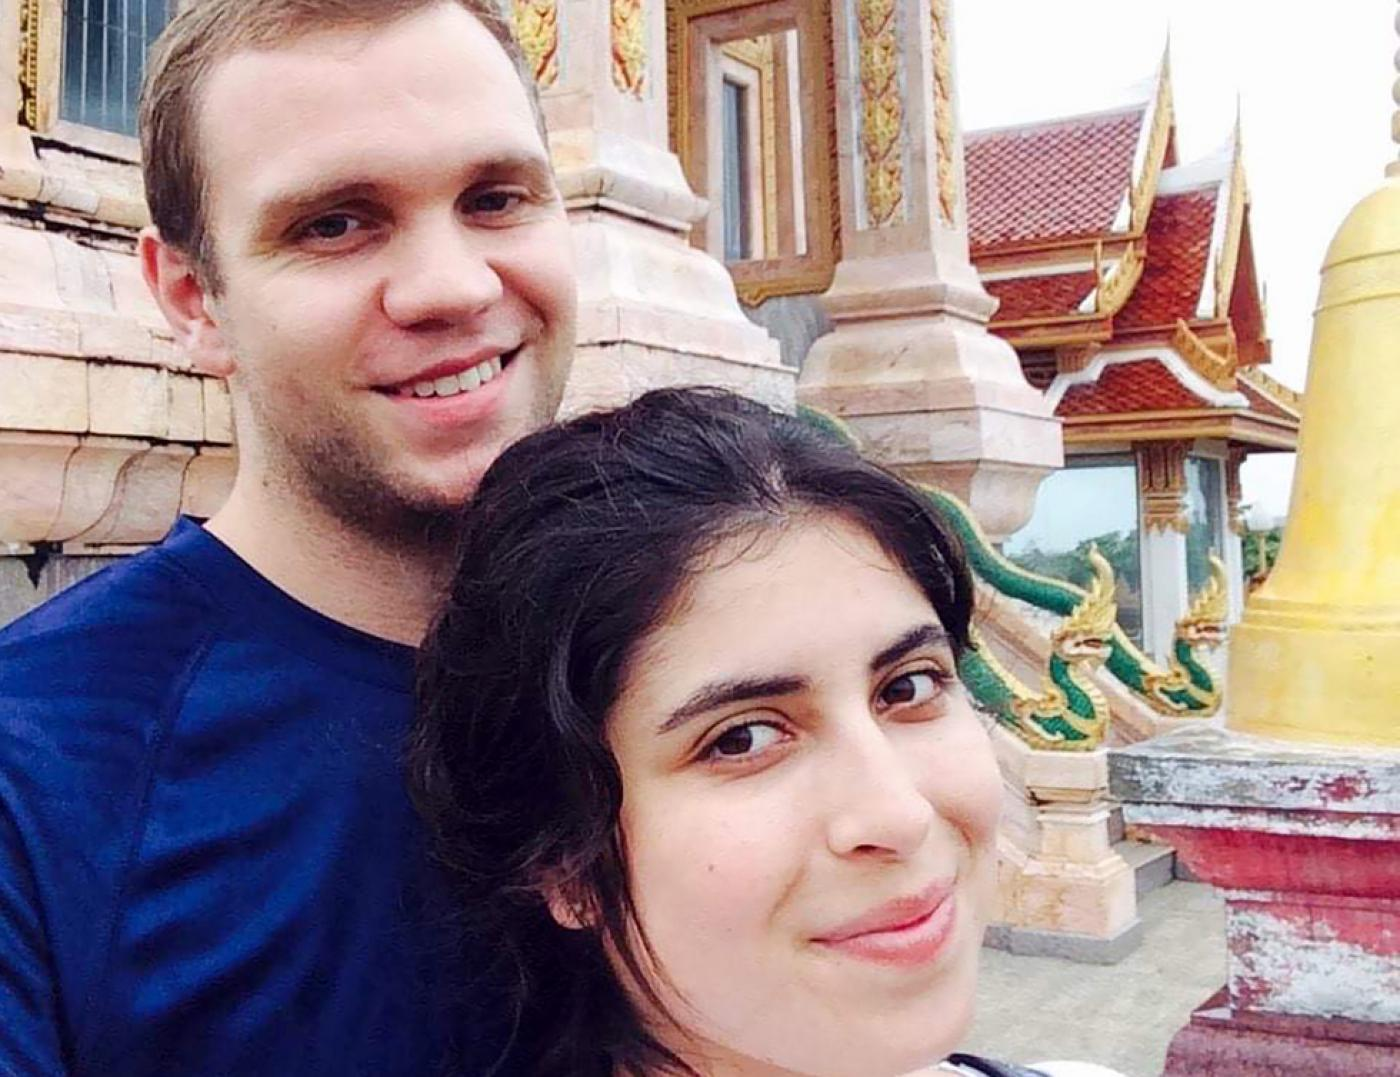 British student Matthew Hedges (L) and his wife Daniela Tejada posing while on holiday in Thailand (AFP)